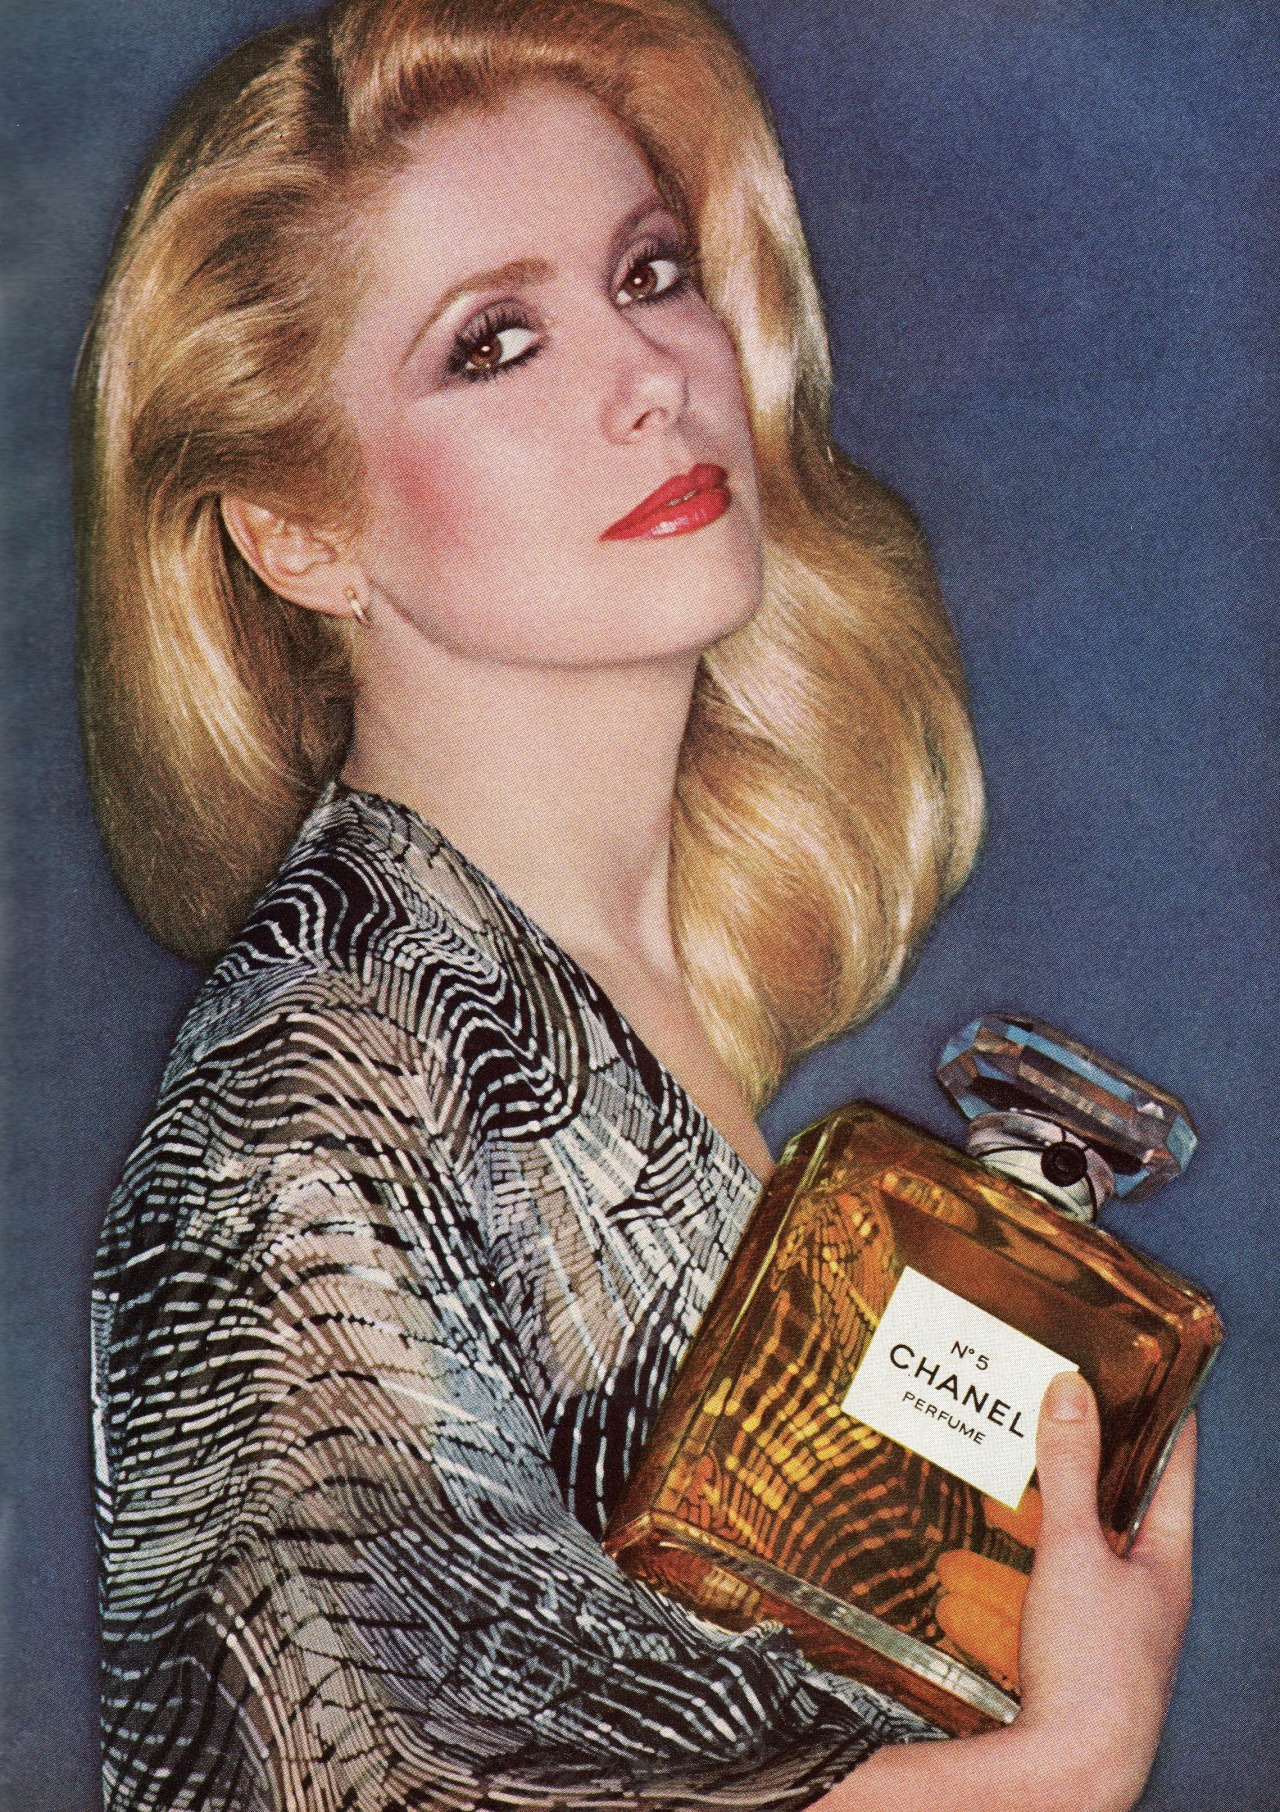 vintagebinger:  Catherine Deneuve for Chanel No. 5, 1977.